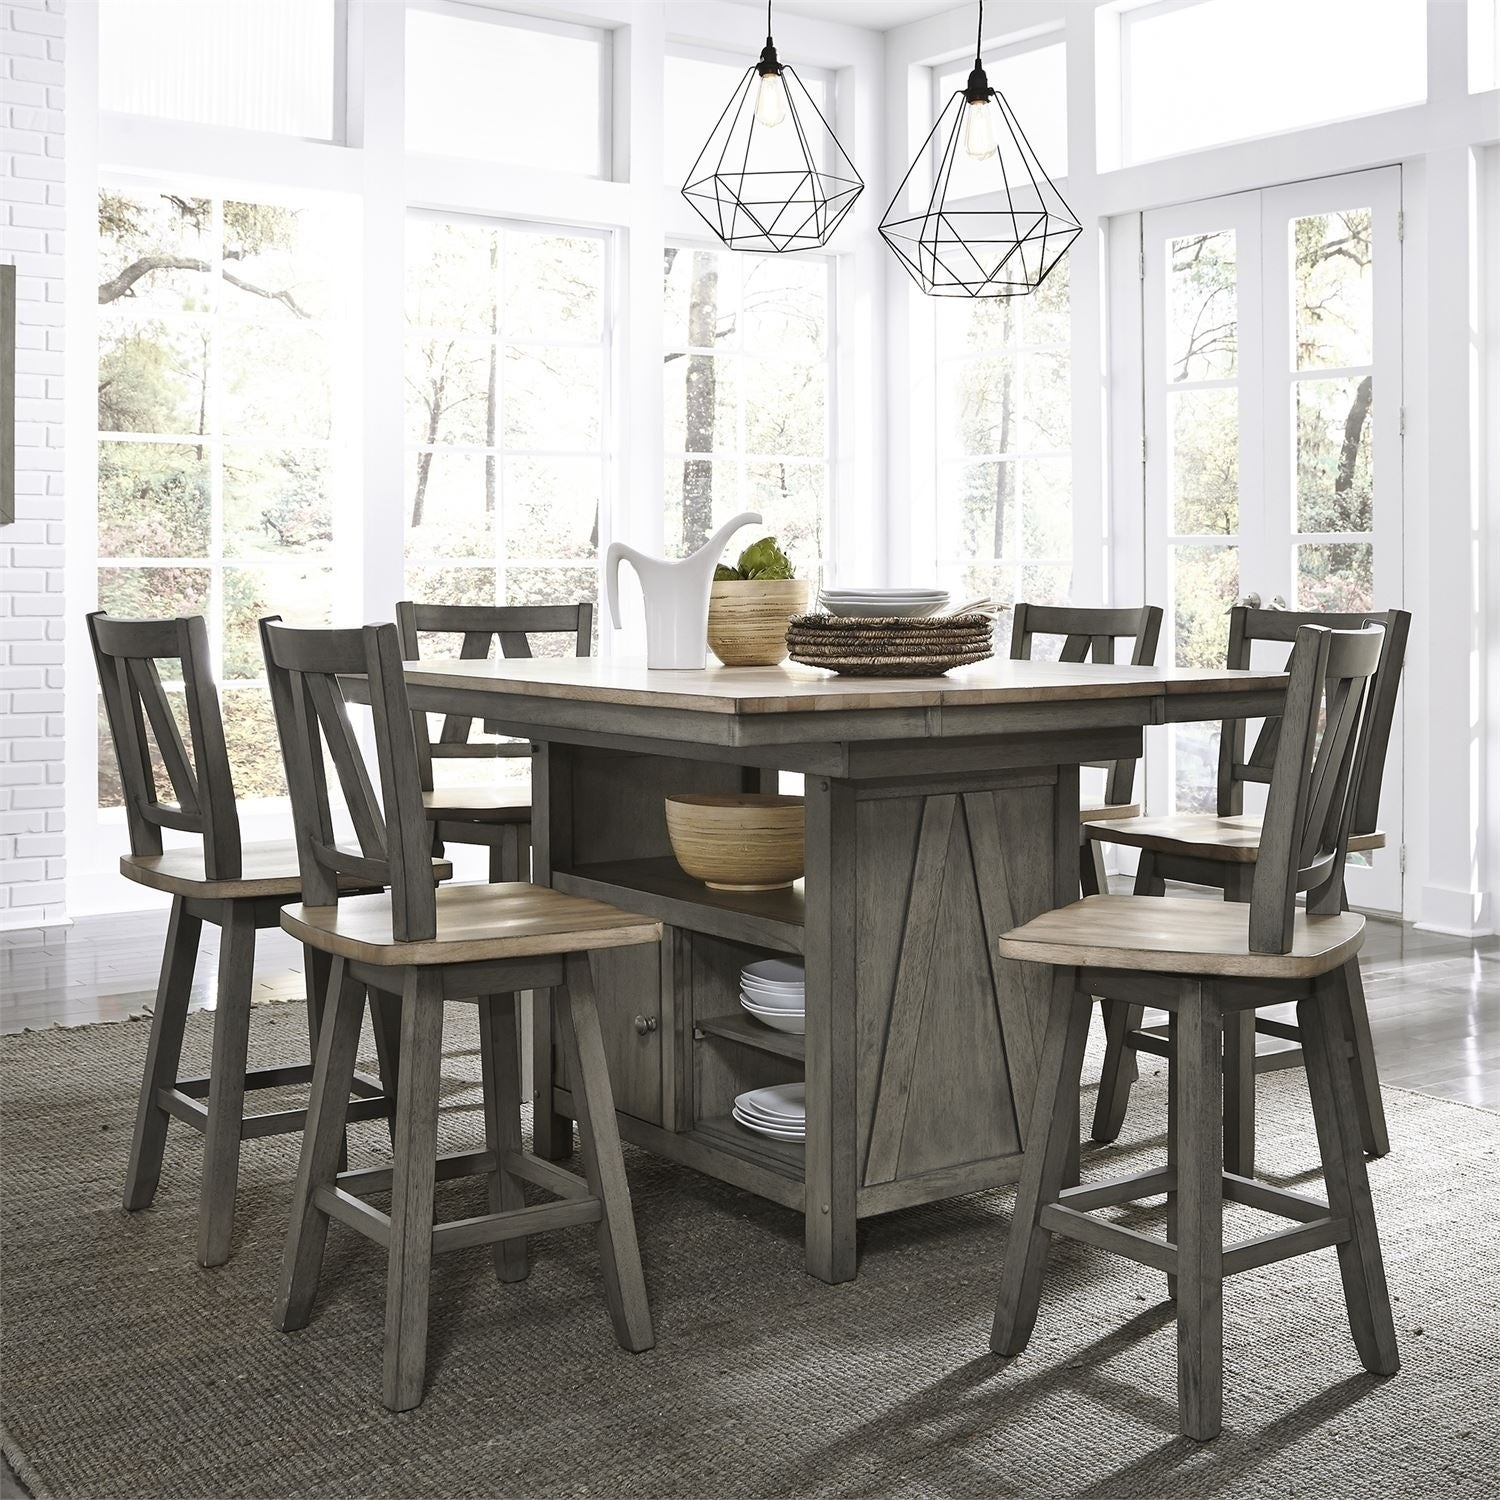 Lindsey Farm Grey and Sandstone 9 piece Gathering Table Set, Brown ...